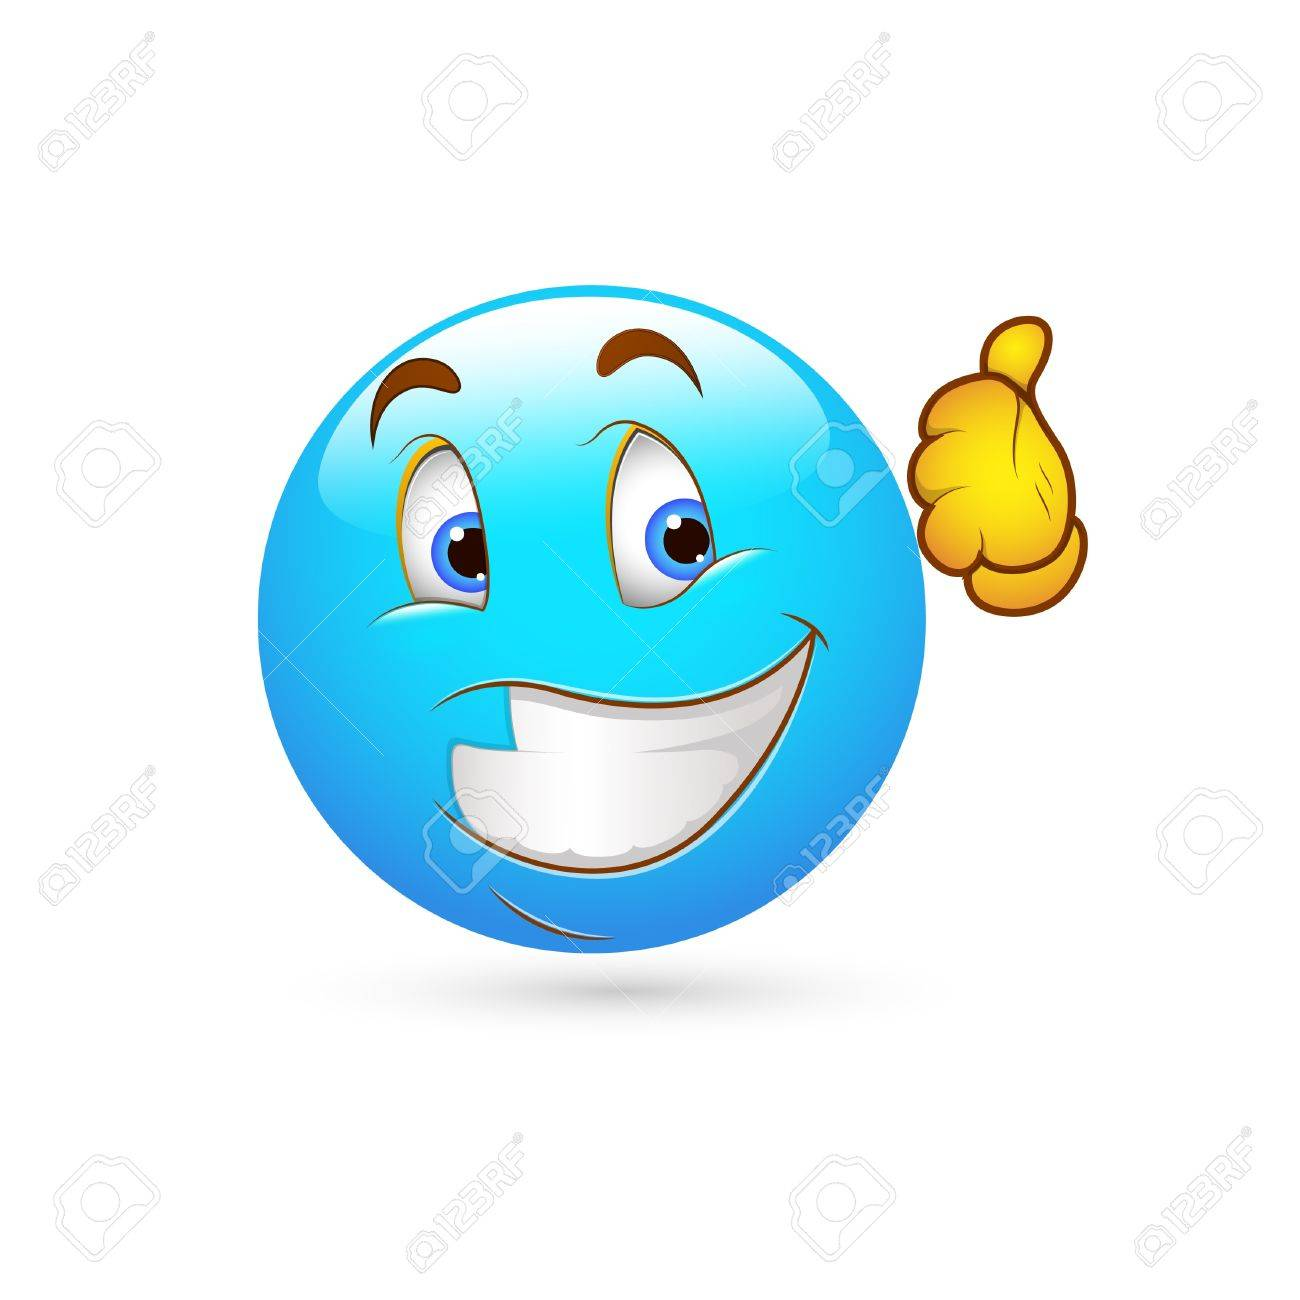 Smiley Emoticons Face Vector - Thumbs up Stock Vector - 15808705